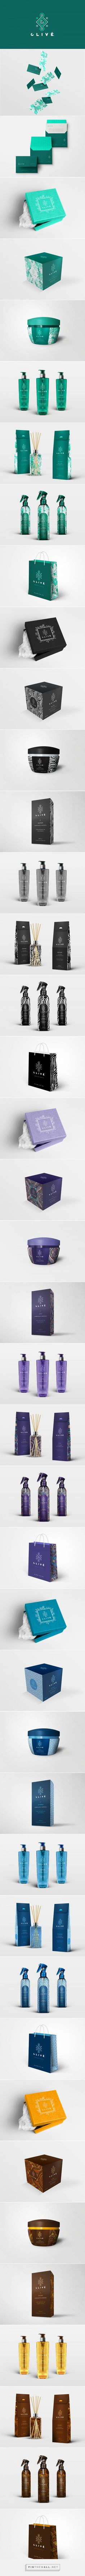 Clivê Cosmetics Branding and Packaging by Jonathan Nacif Branding Agency, Business Branding, Cosmetic Design, Cosmetic Logo, Identity Design, Brand Identity, Visual Identity, Brand Manual, Watercolor Logo